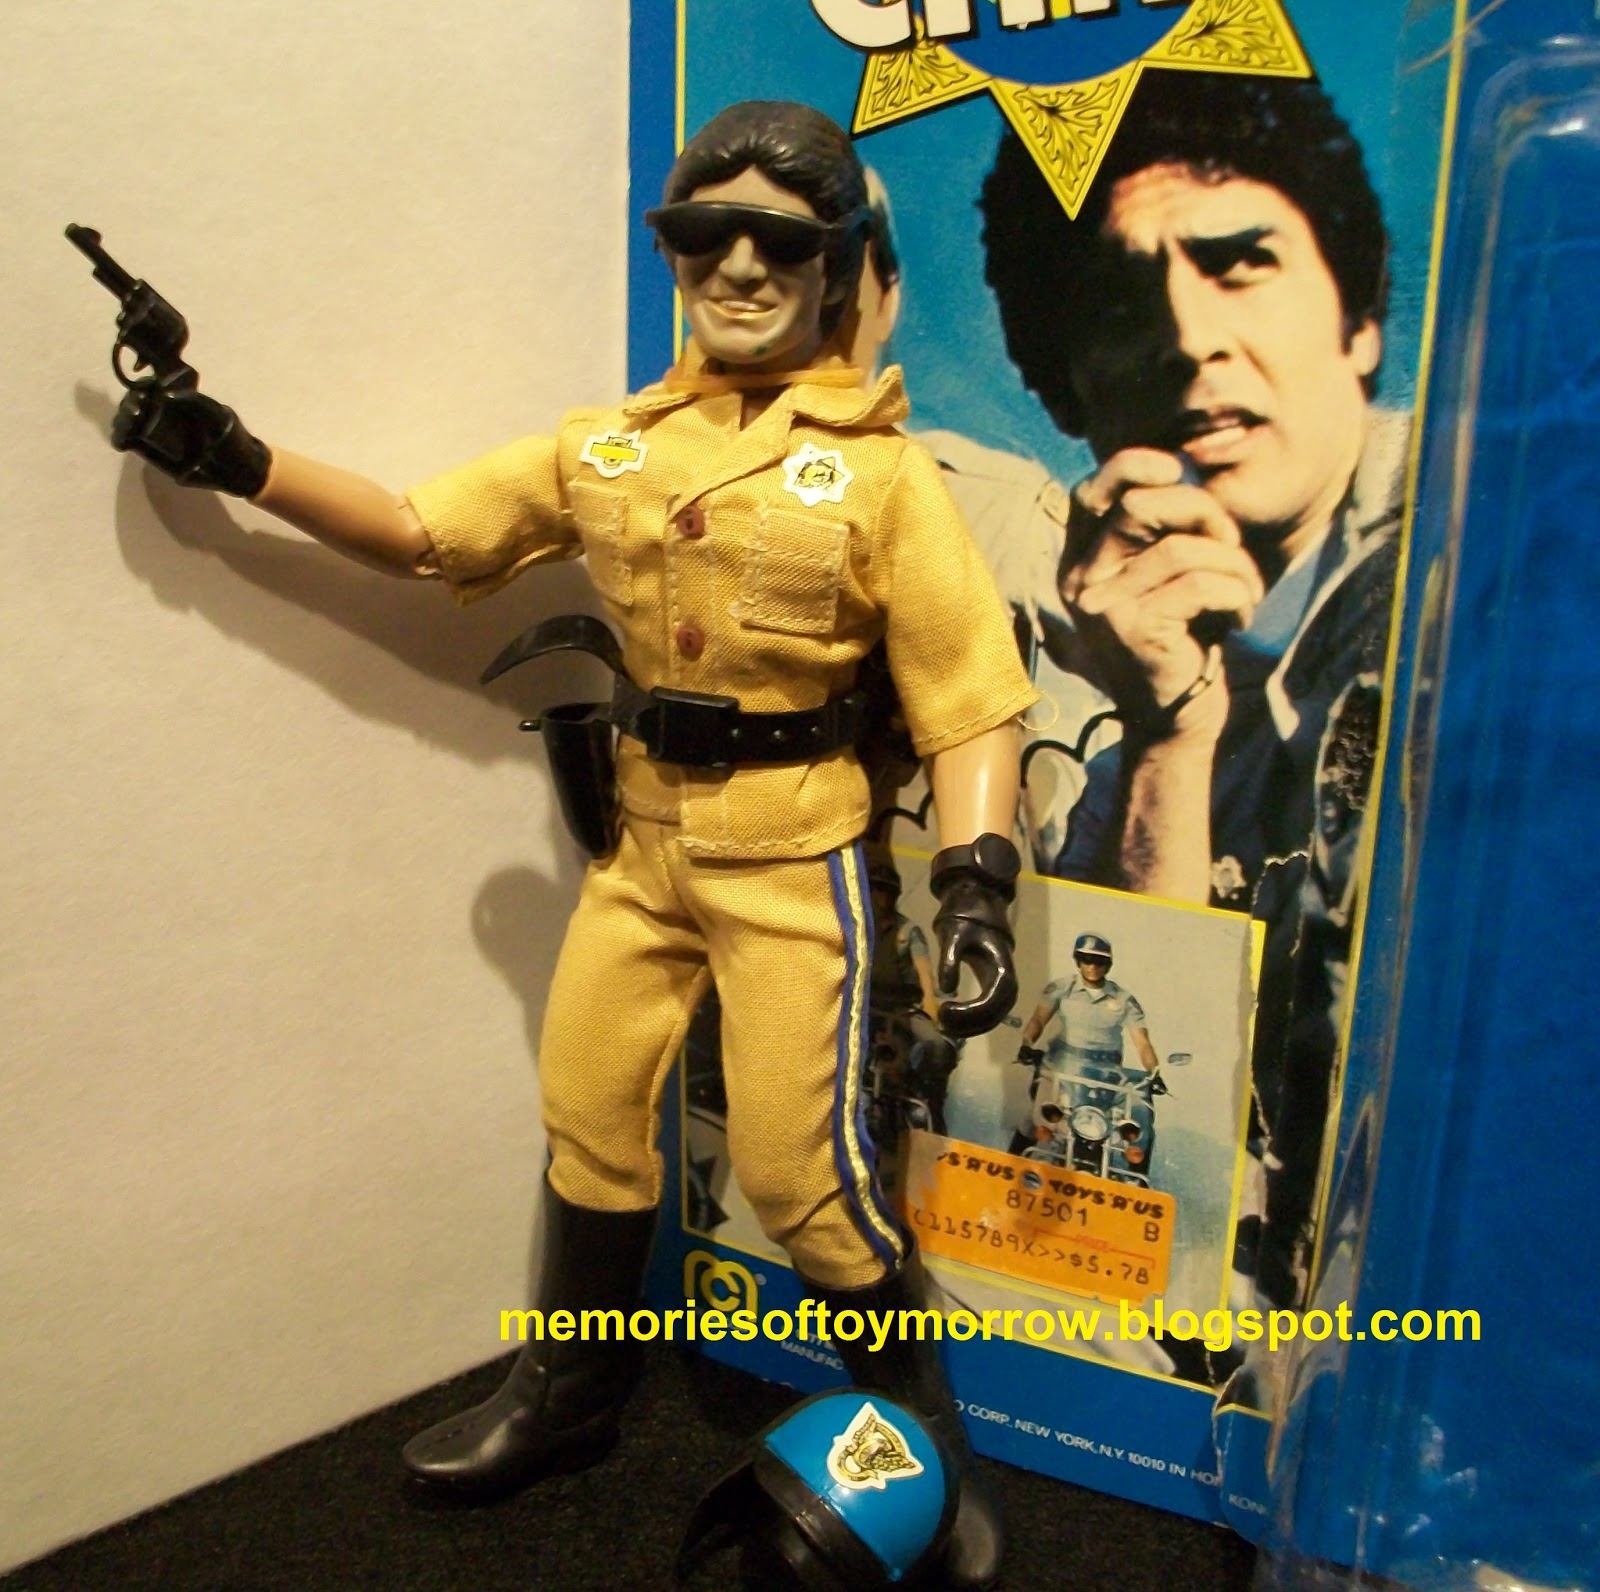 Chips Tv Show Chips mego ponch gets a 1600x1592